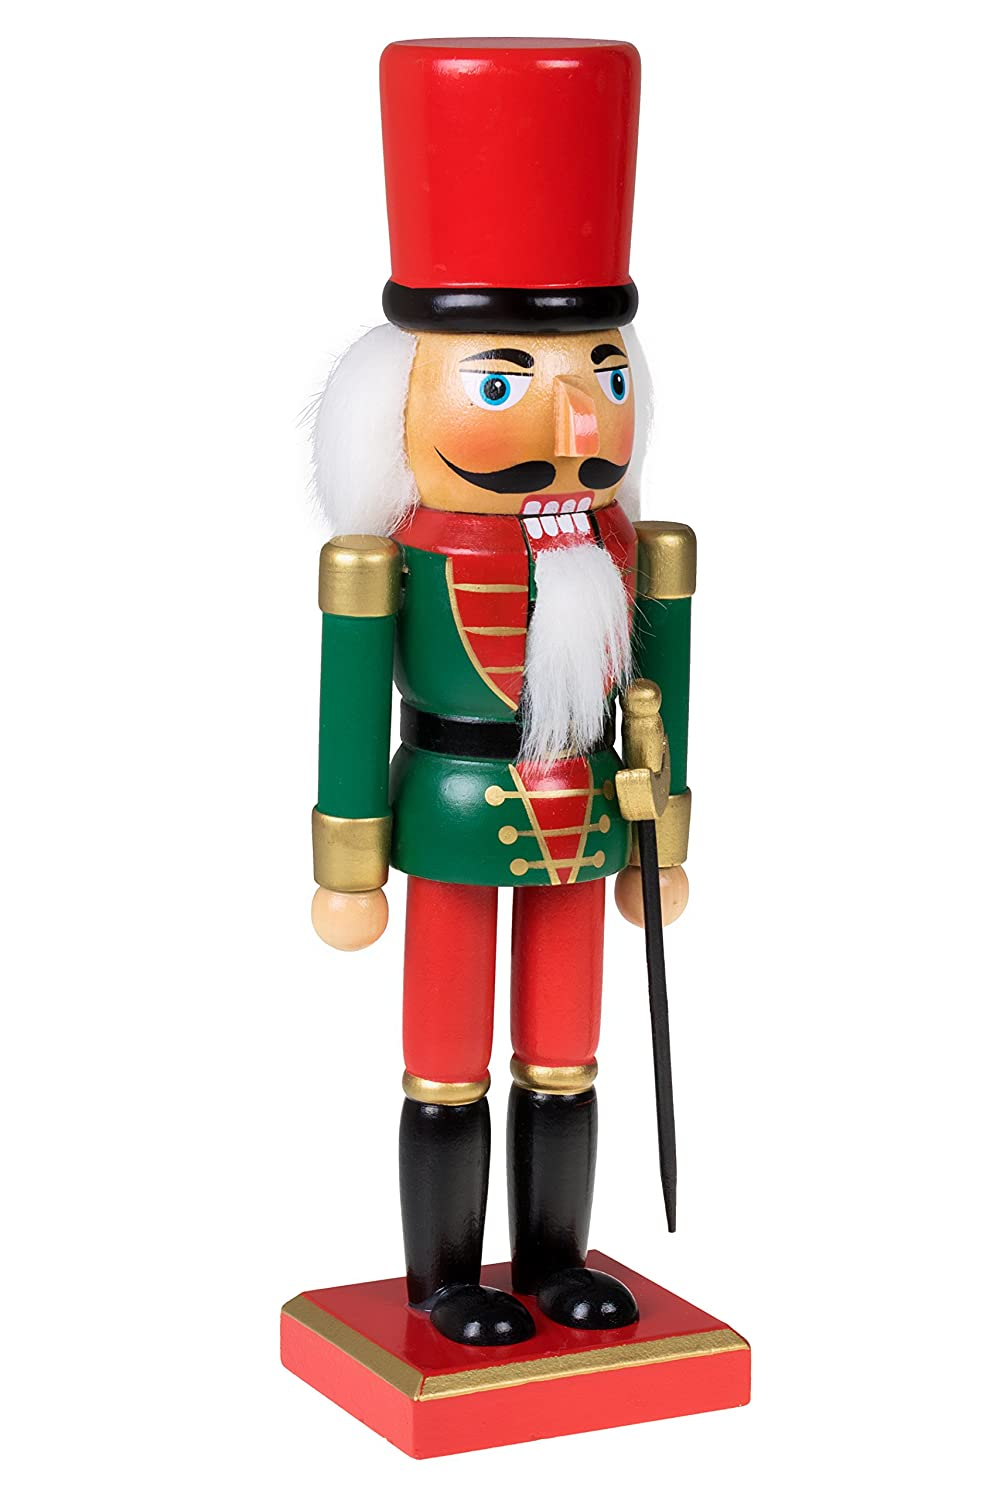 Amazon.com: Traditional Christmas Green and Red Soldier Nutcracker ...